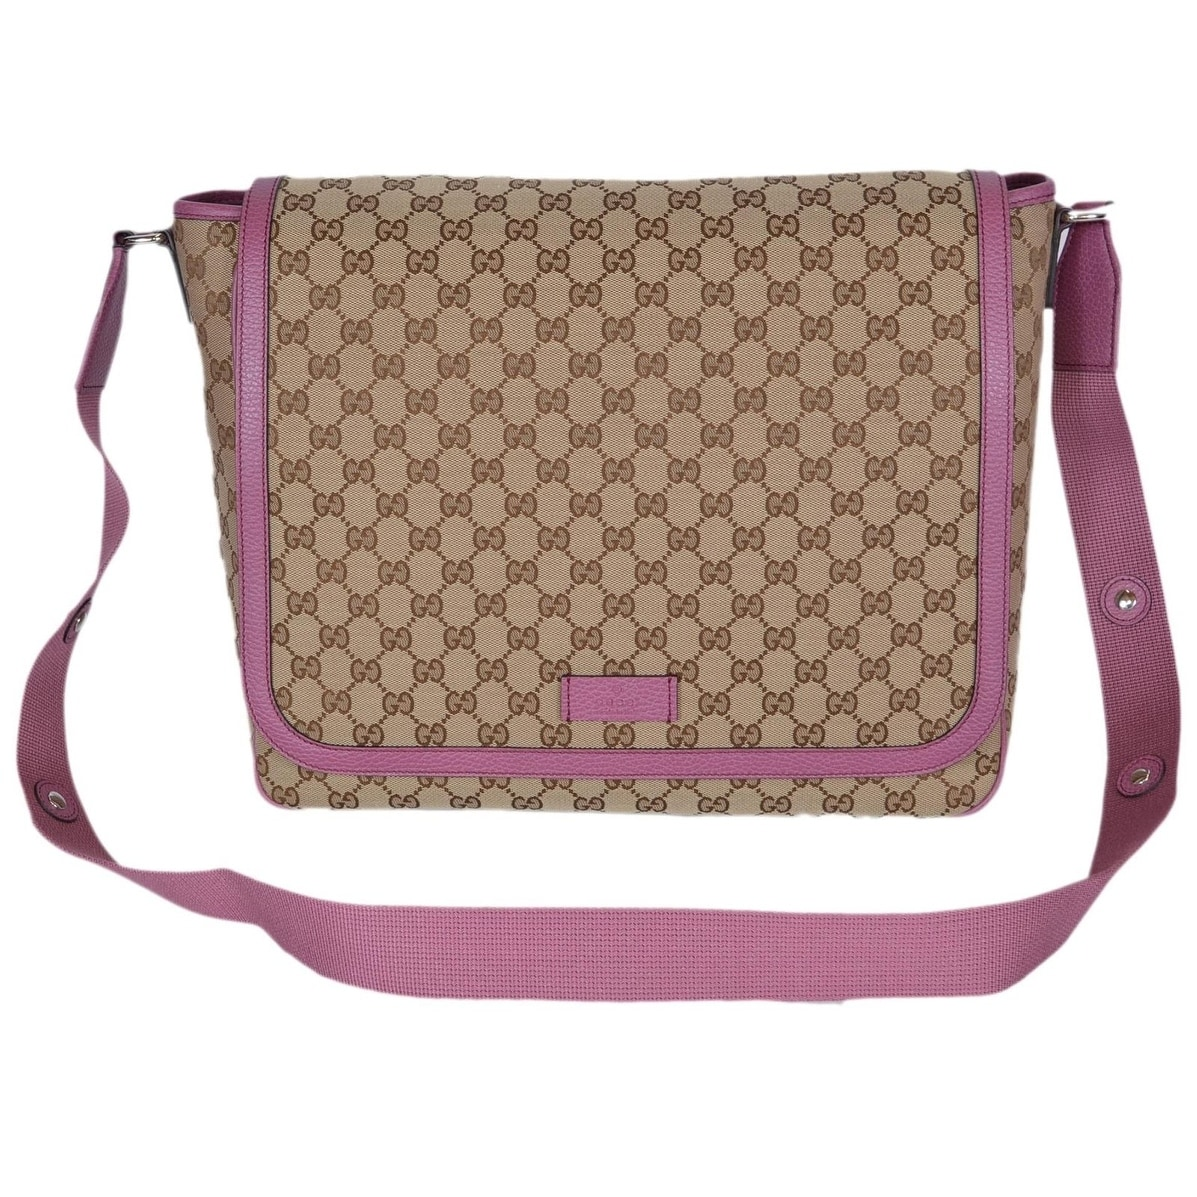 40ae6d266aa Shop Gucci 510340 Beige Pink Original Canvas GG Convertible Diaper Baby Bag  - Free Shipping Today - Overstock - 21380843